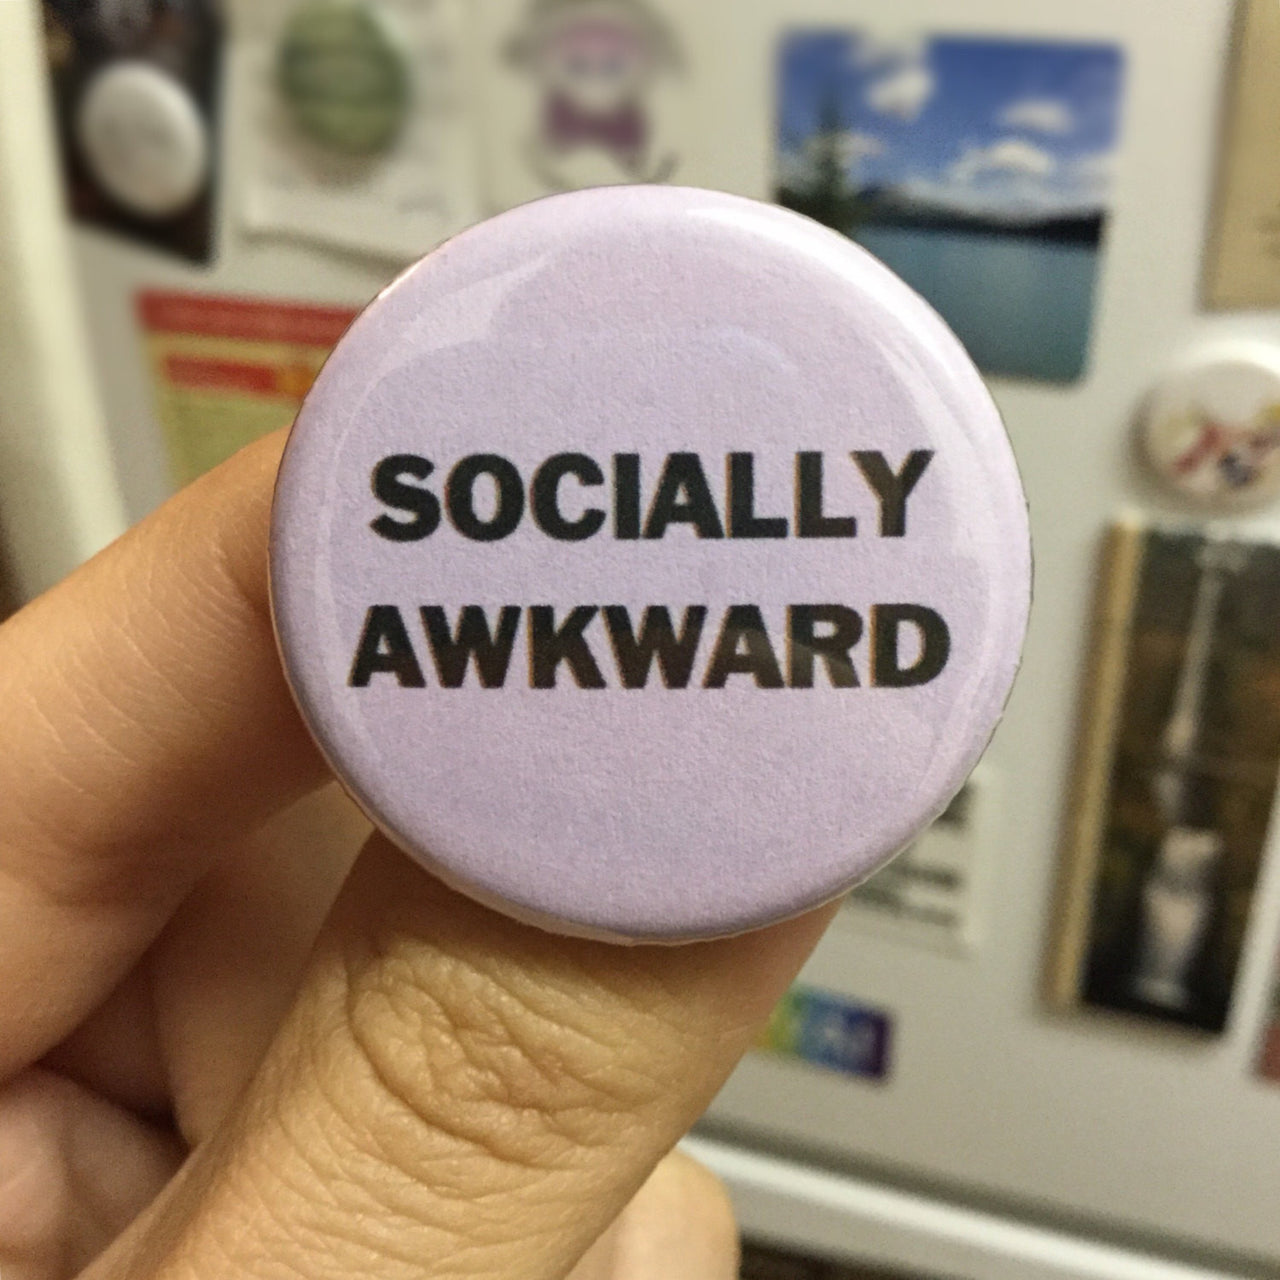 Socially awkward button - Radical Buttons